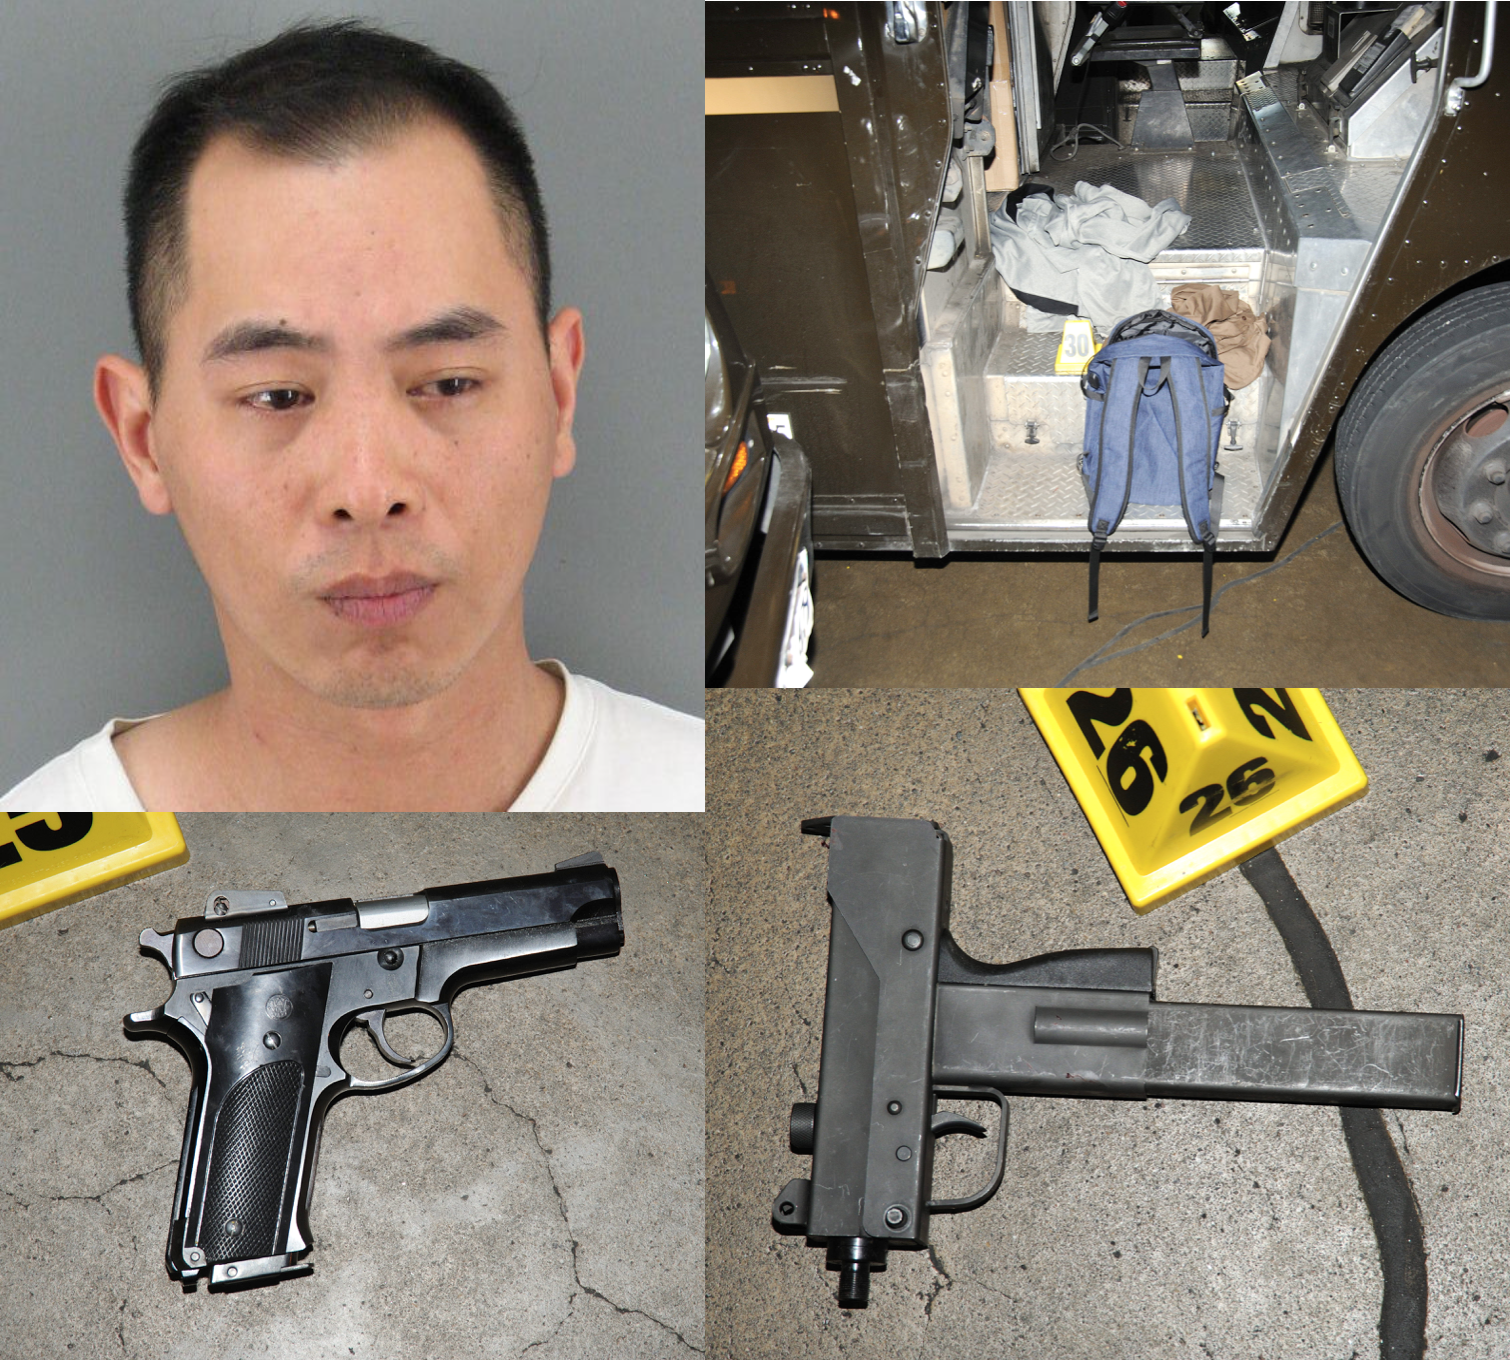 Top Left: Booking photo, Top right: backpack evidence in UPS truck, Bottom Left: gun, Bottom right: gun with extended magazine